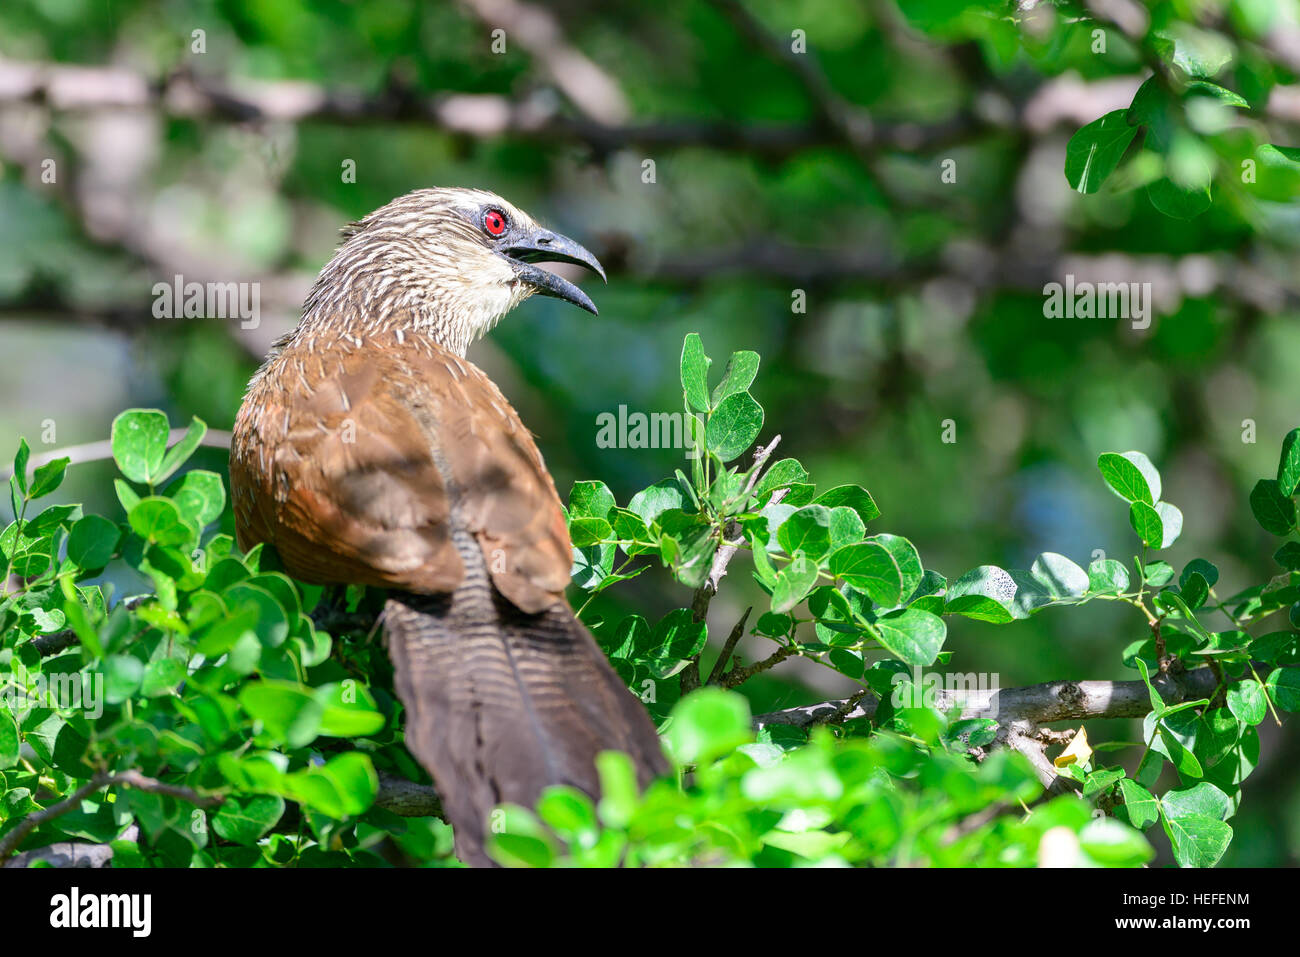 A white-browed coucal (Centropus superciliosus) perched on in a tree. Also known as the lark-heeled cuckoo. - Stock Image